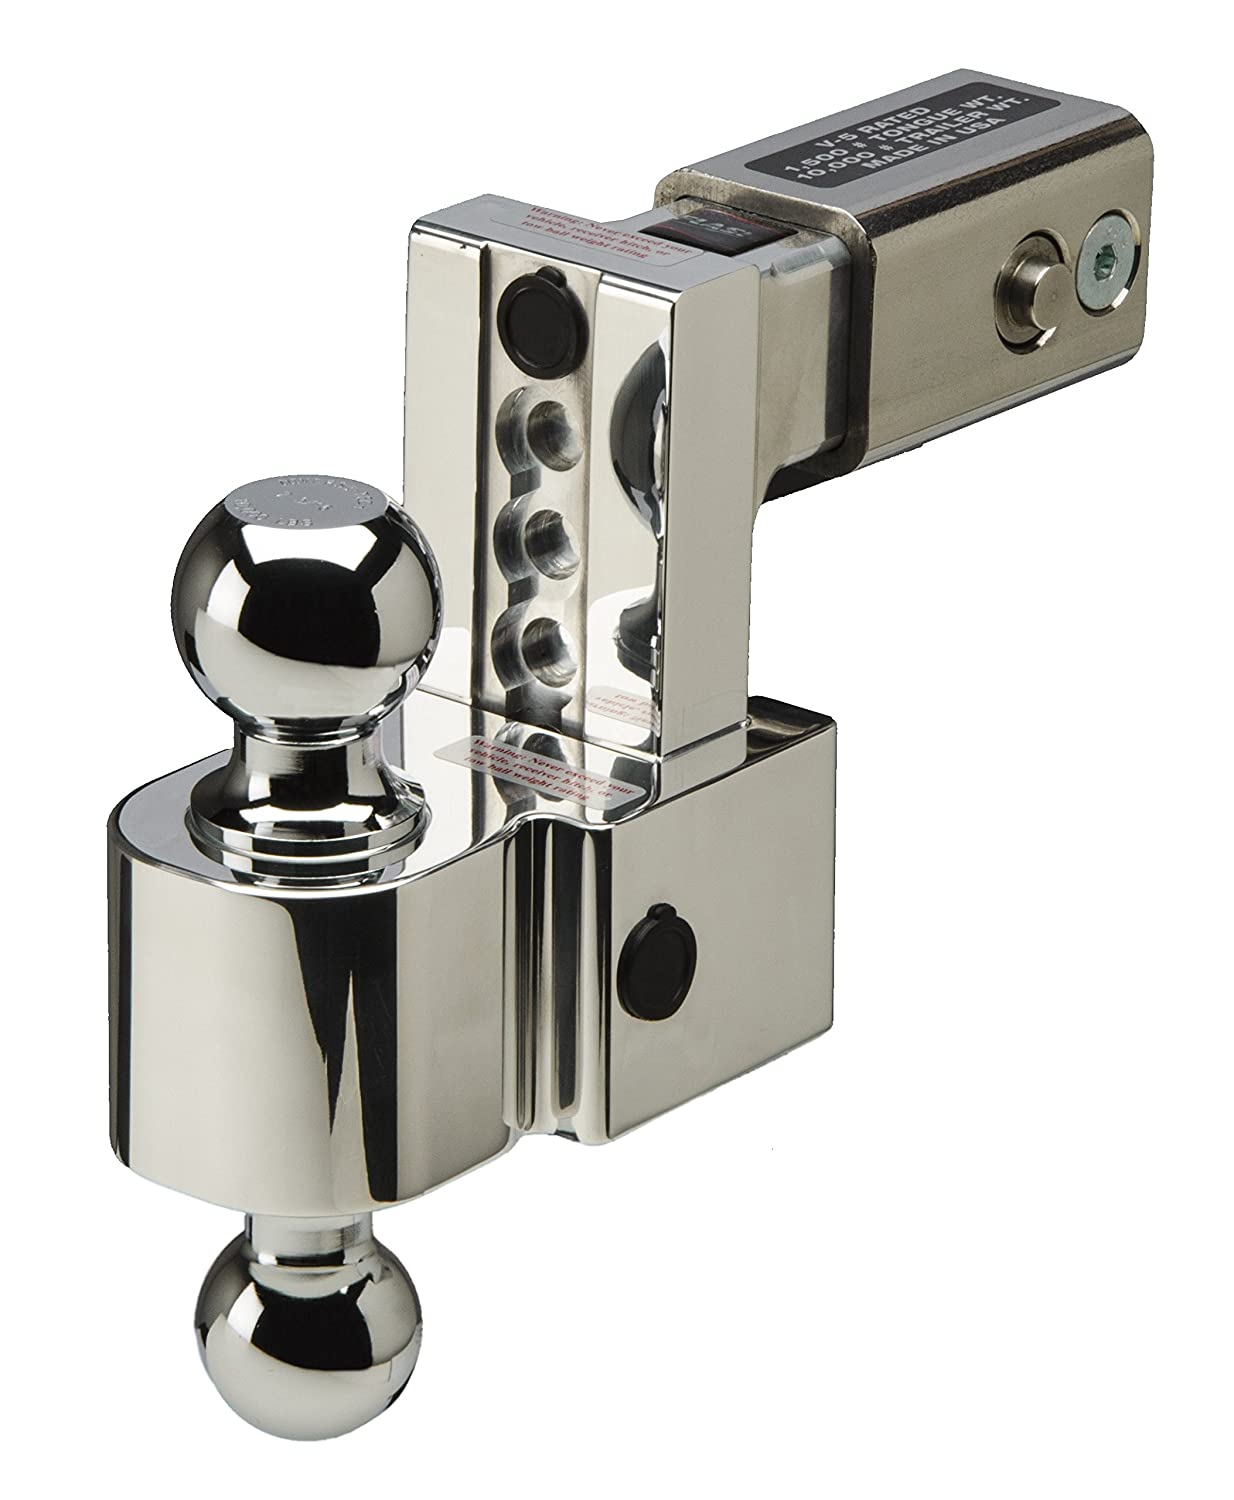 Built-In Locks 2.5 Inch Shank and Chrome Plated Balls Fastway FLASH ALBM DT-ALBM6625 Adjustable Dual Locking Aluminum Ball Mount with 6 Inch Drop